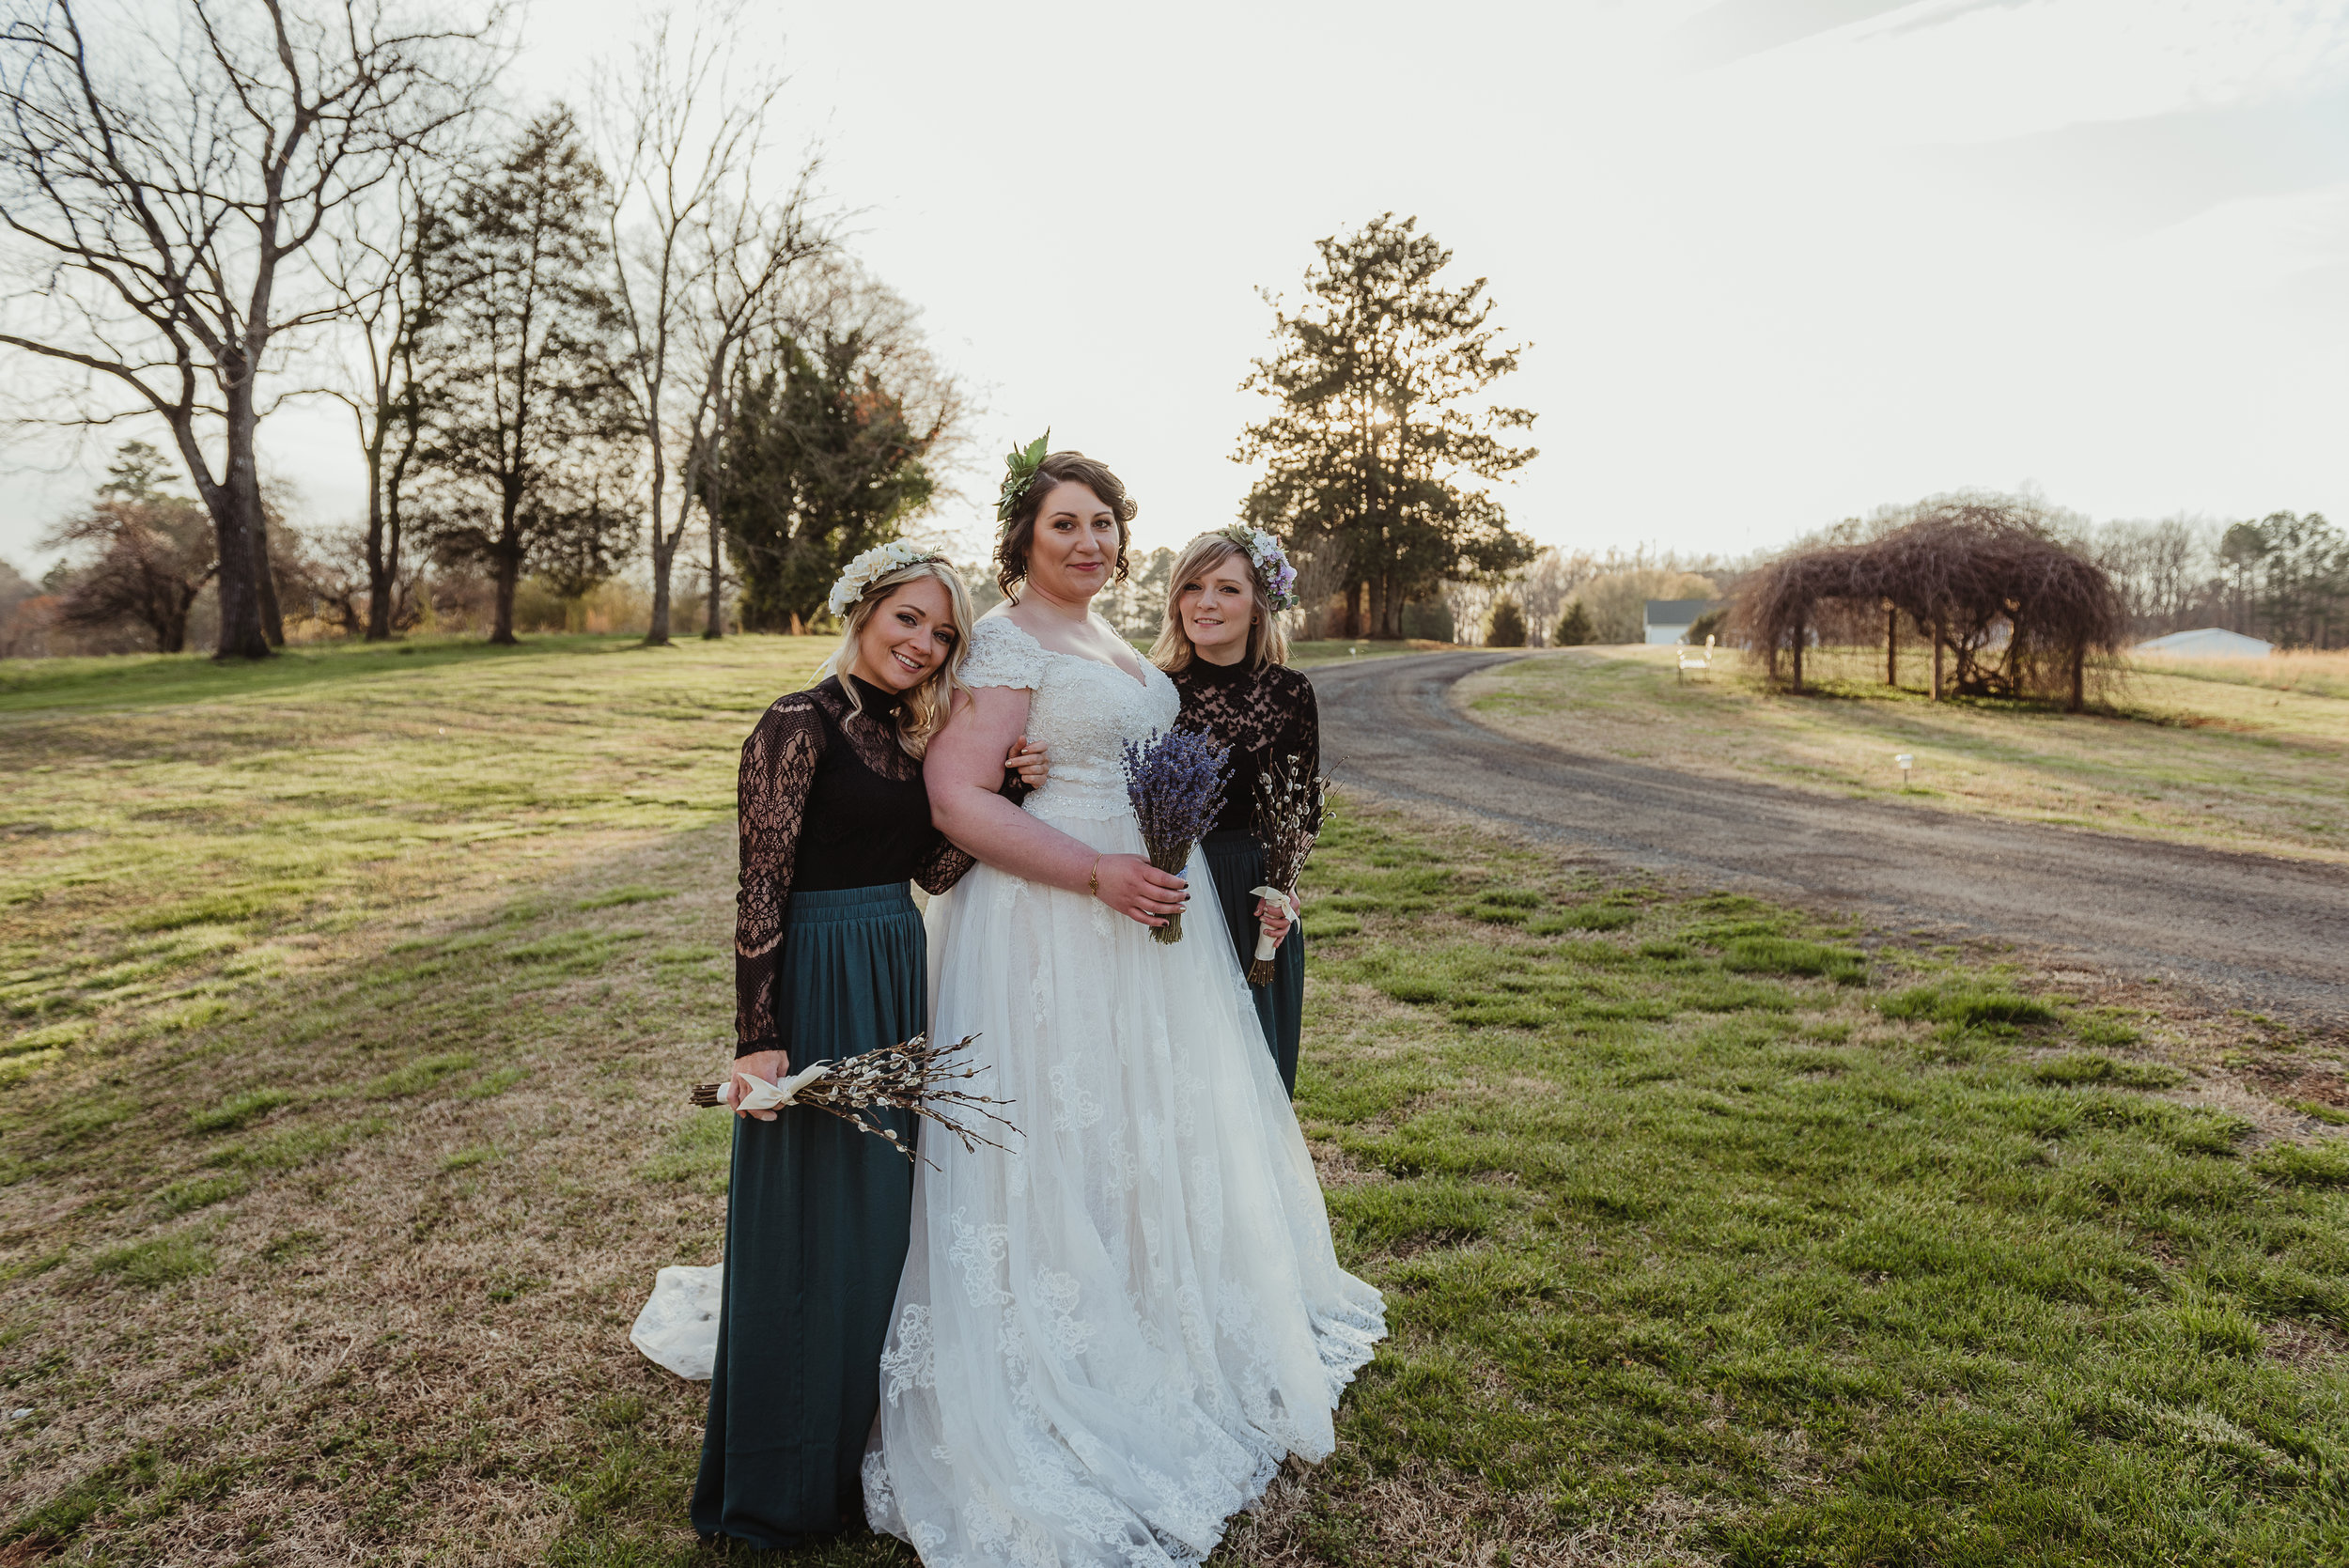 Raleigh-wedding-photographer-bride-and-bridesmaids-barn-at-valhalla-rose-trail-images.jpg